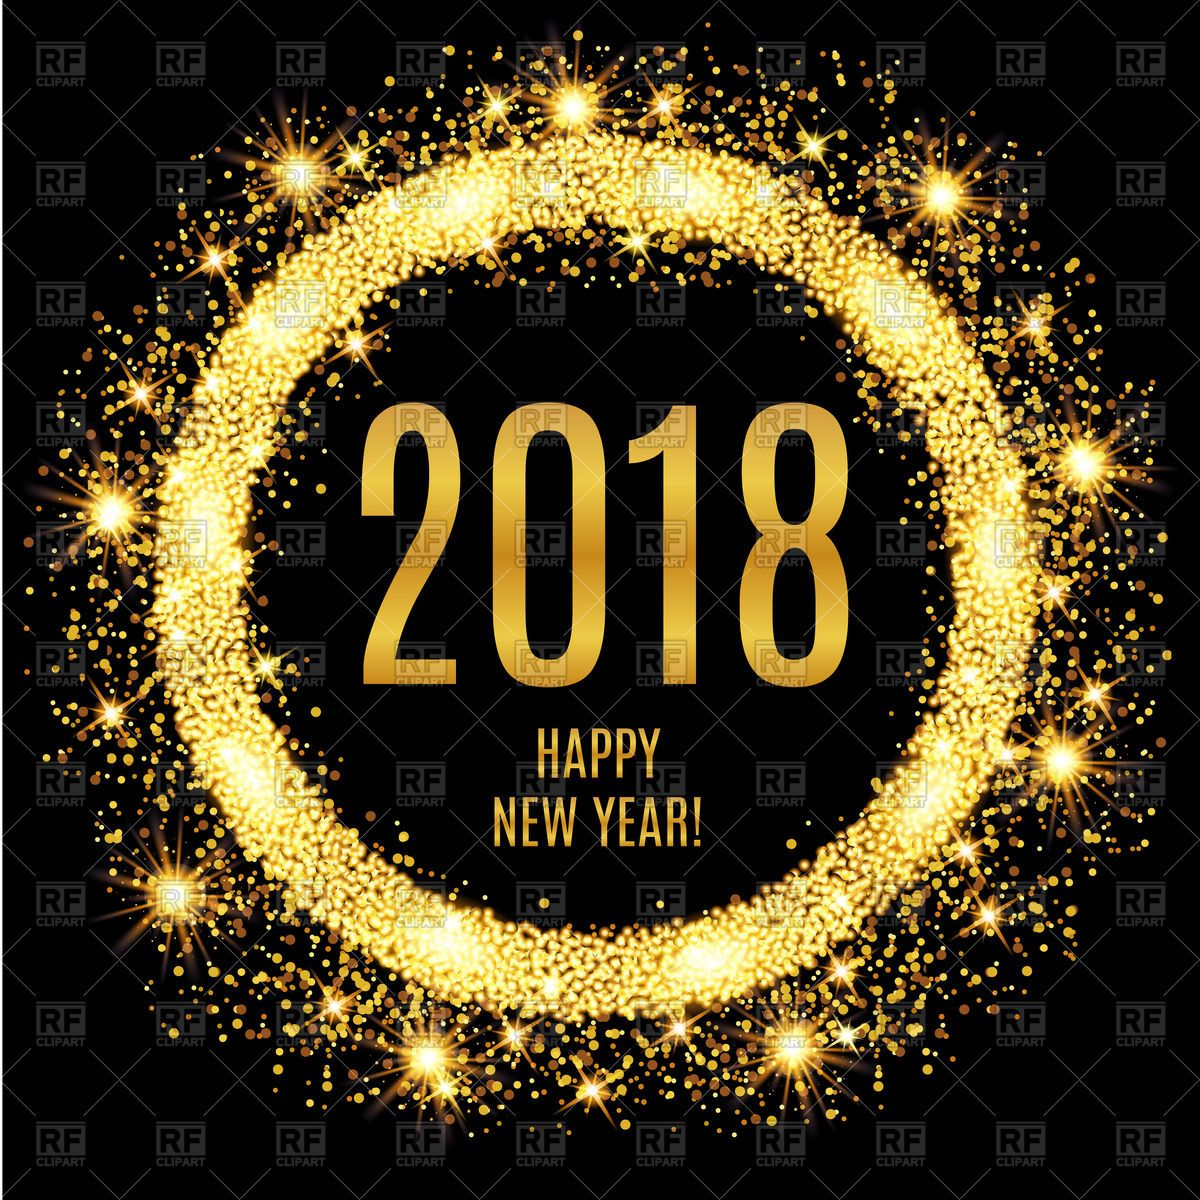 2018 happy new year glowing gold background 153352 download royalty free vector clipart eps graphicdesign vectorclipart vectorart vectorstock